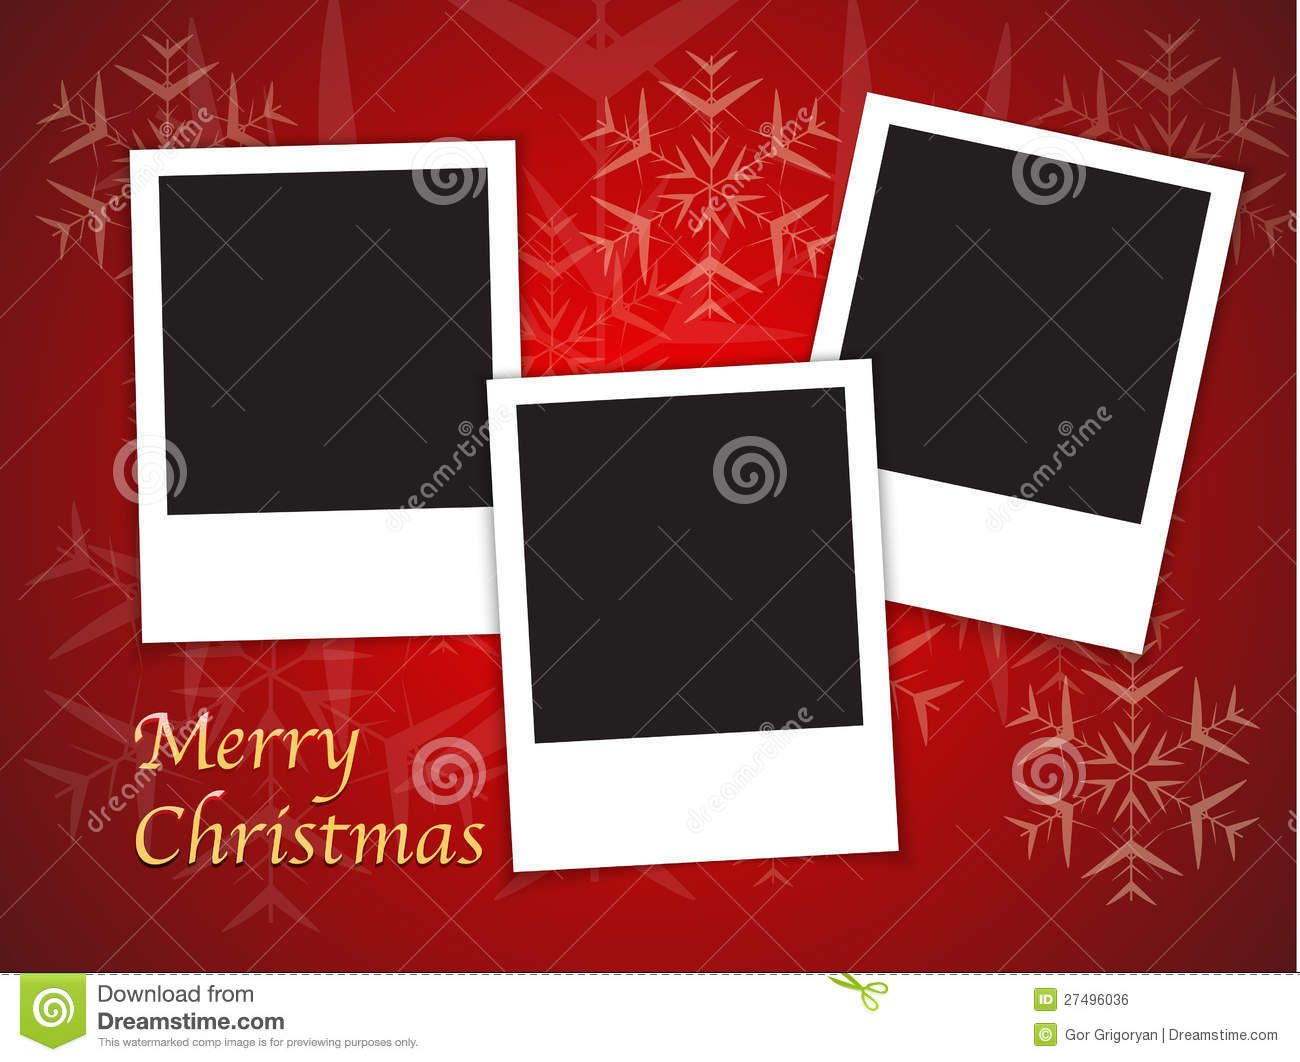 004 Beautiful Free Photo Christma Card Template Highest Quality  Templates For Photoshop OnlineFull